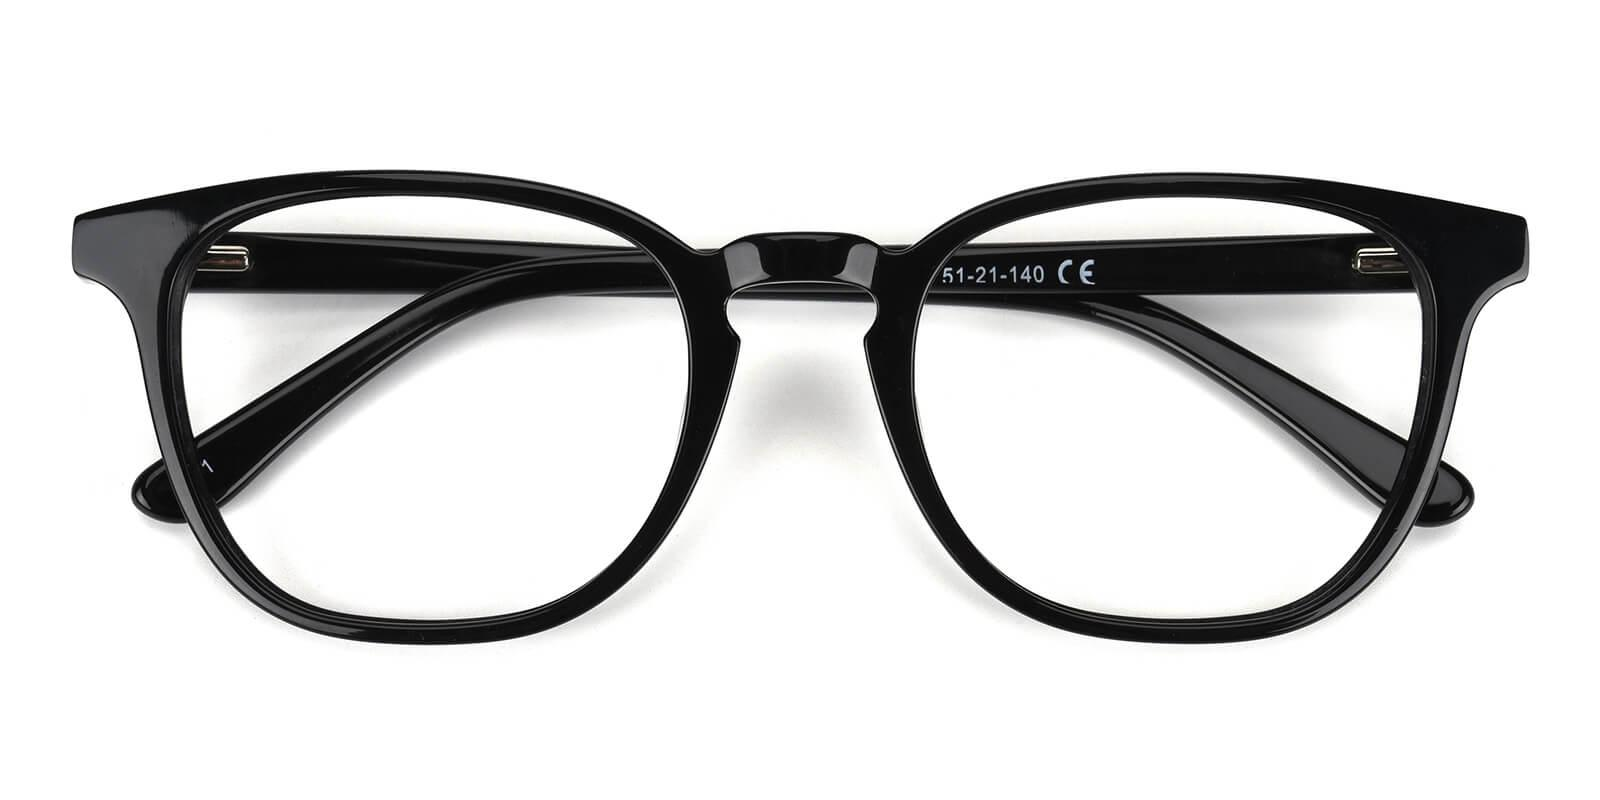 Genius-Black-Square-Acetate-Eyeglasses-detail